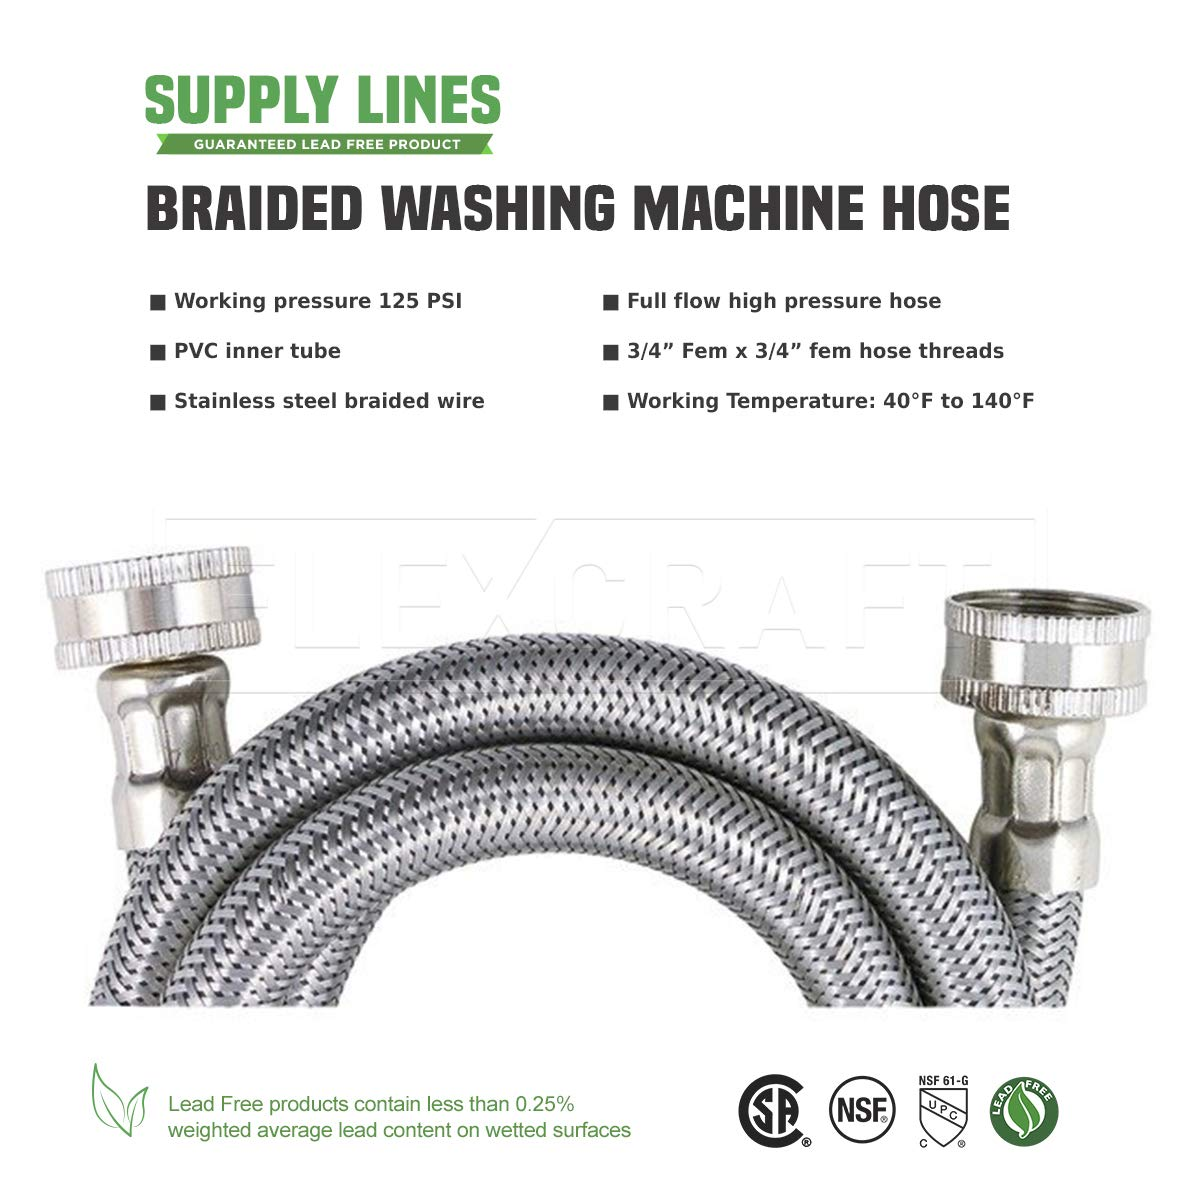 Hot and Cold Water Supply 2 Pack Washing Machine Supply Line FlexCraft 2576PR-2 Stainless Steel Washing Machine Hose Connector Burst Proof 6 FT